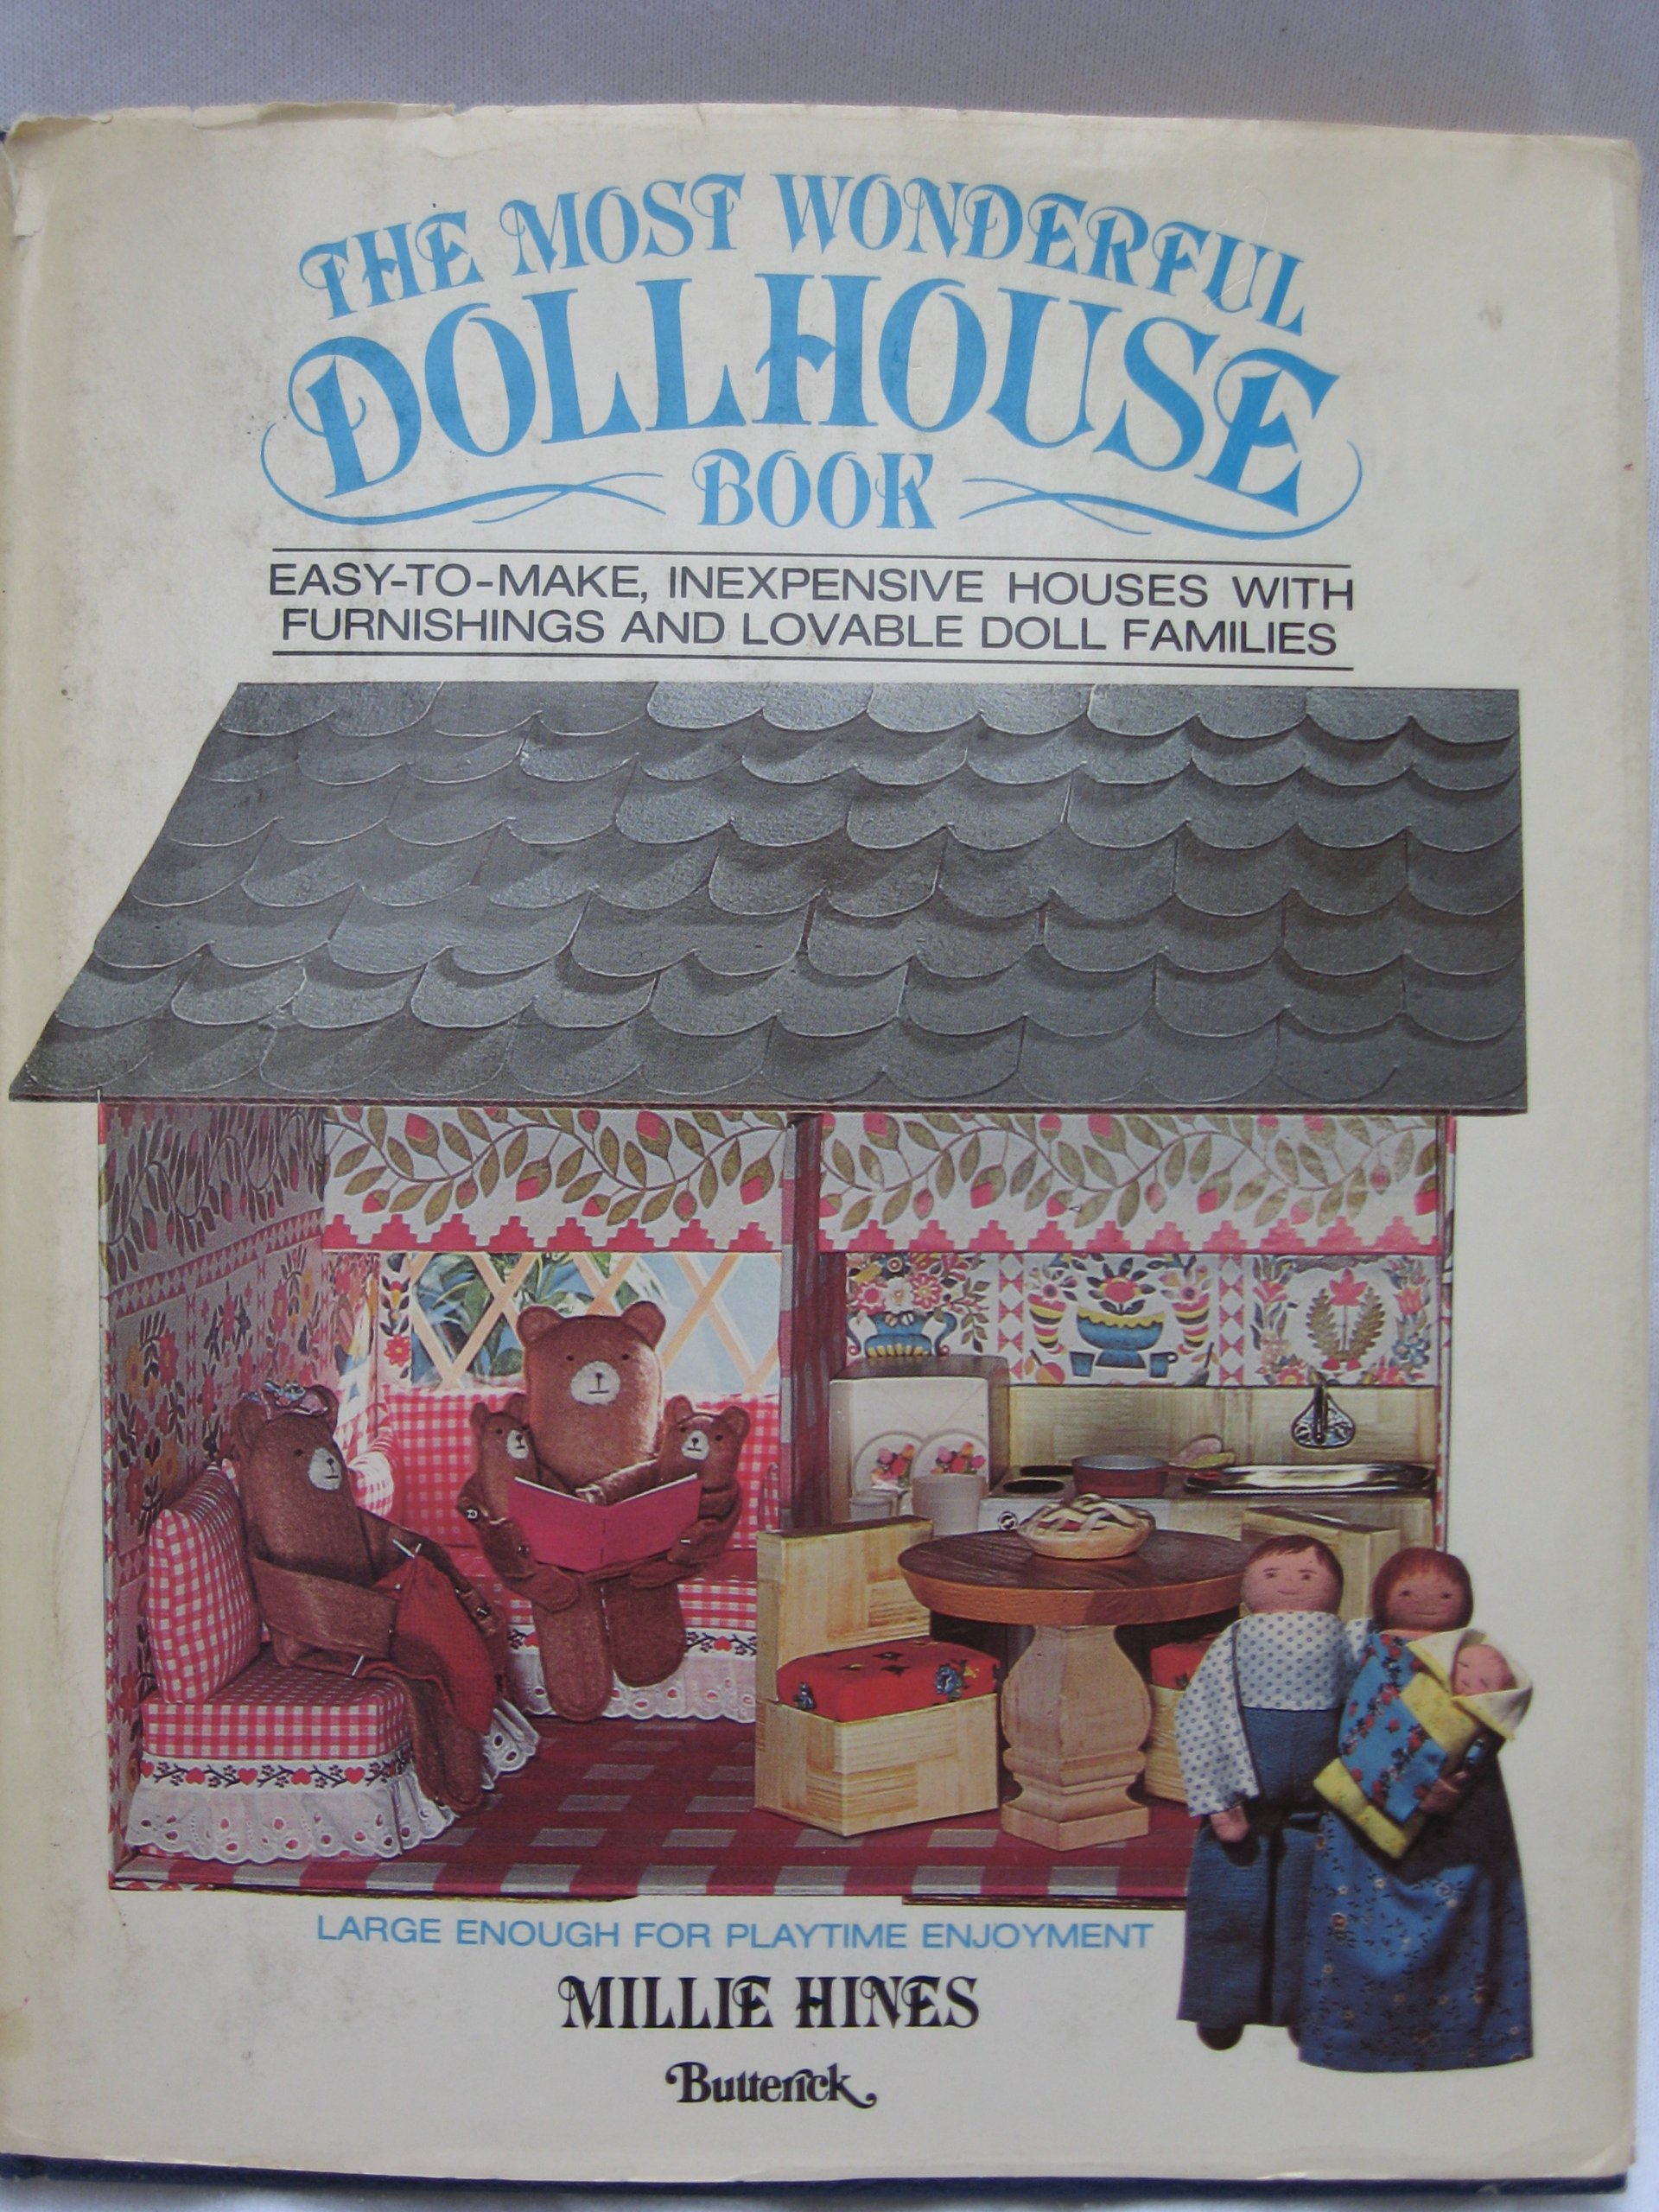 The Most Wonderful Dollhouse Book: Easy-To-Make, Inexpensive Houses with Furnishings and Lovable Doll Families